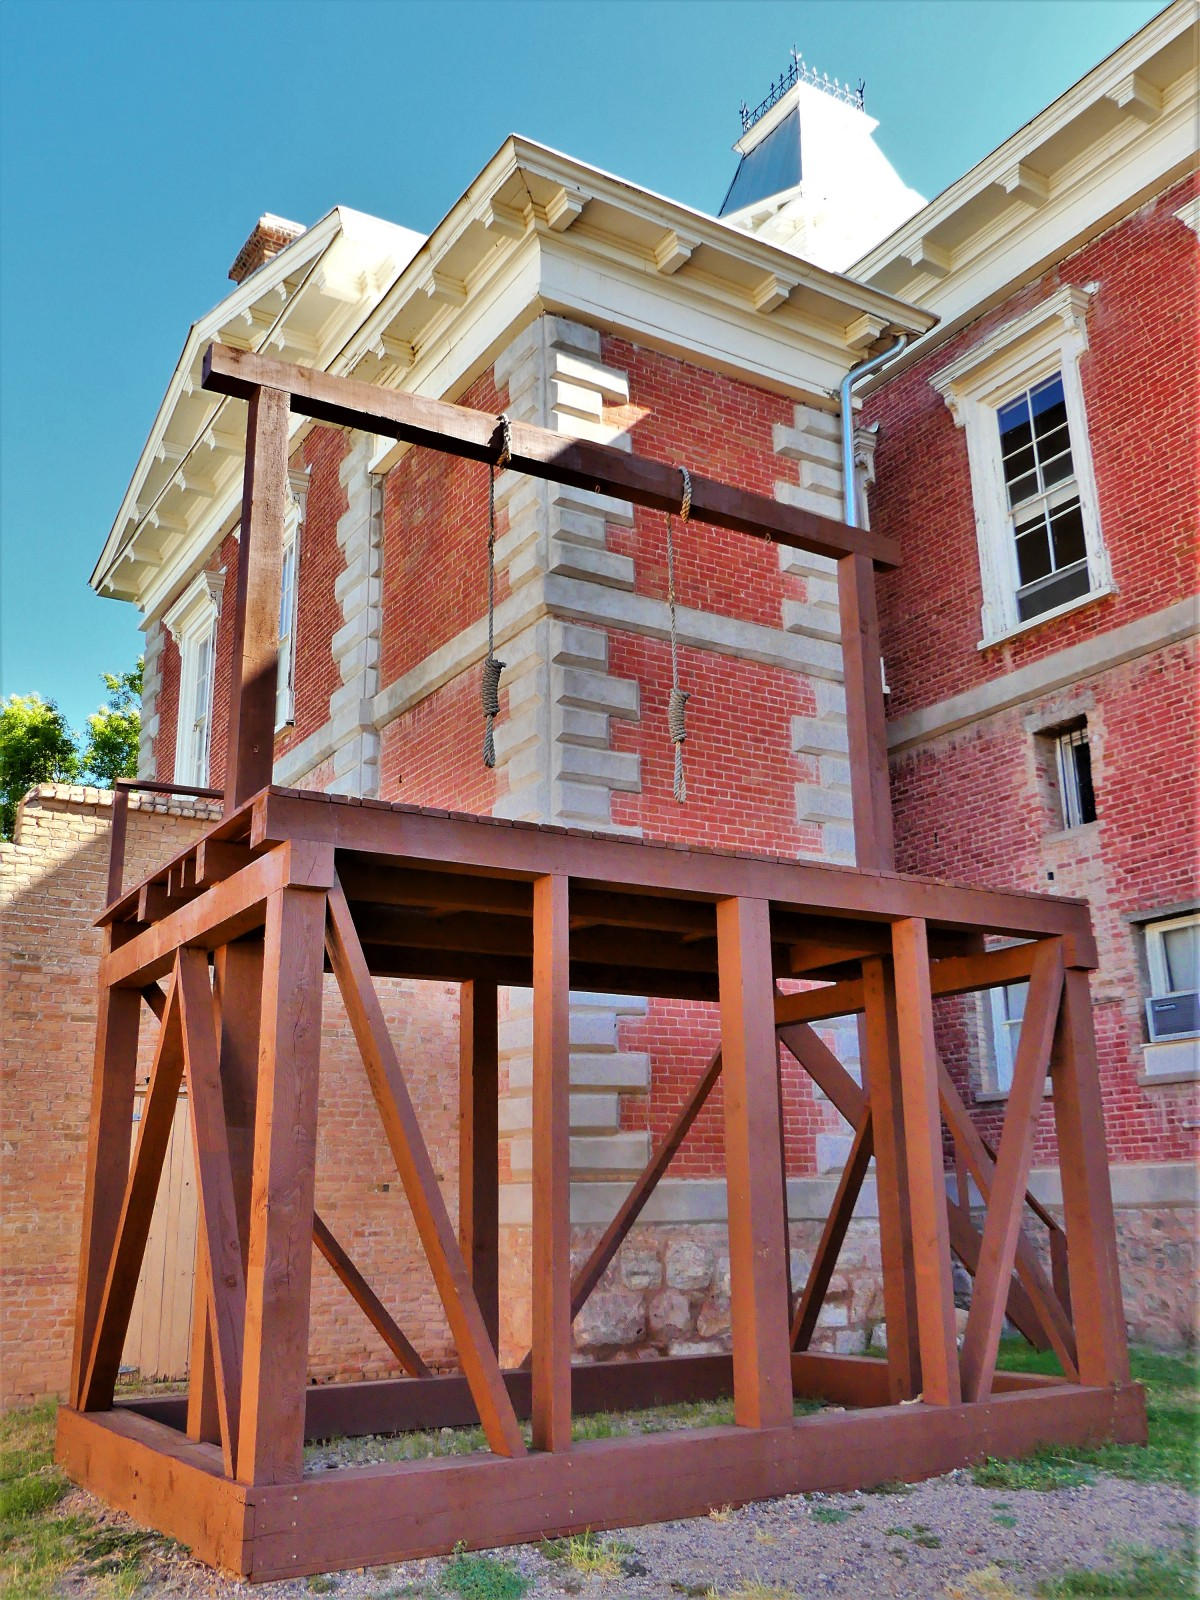 courthouse gallows